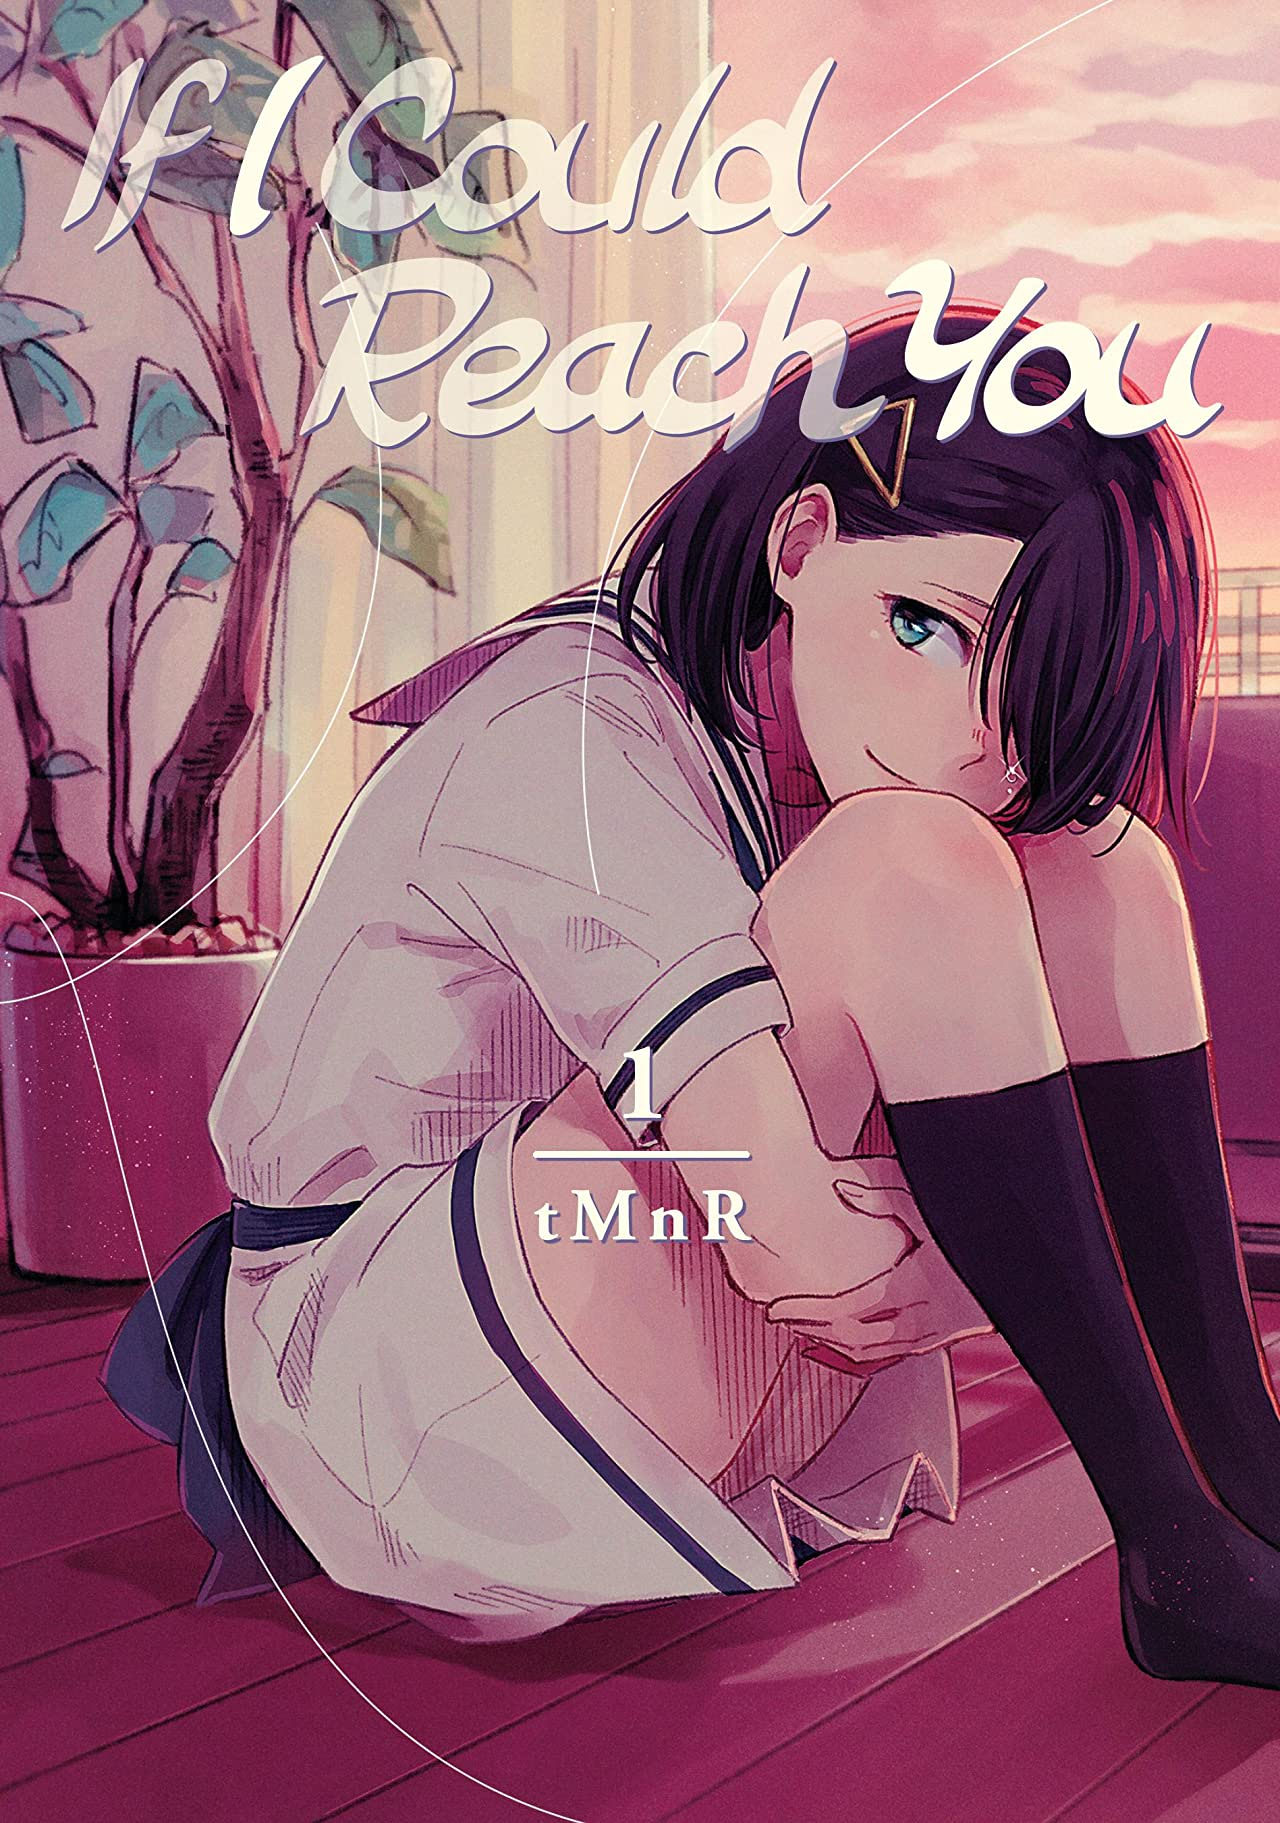 If I Could Reach You Vol. 1